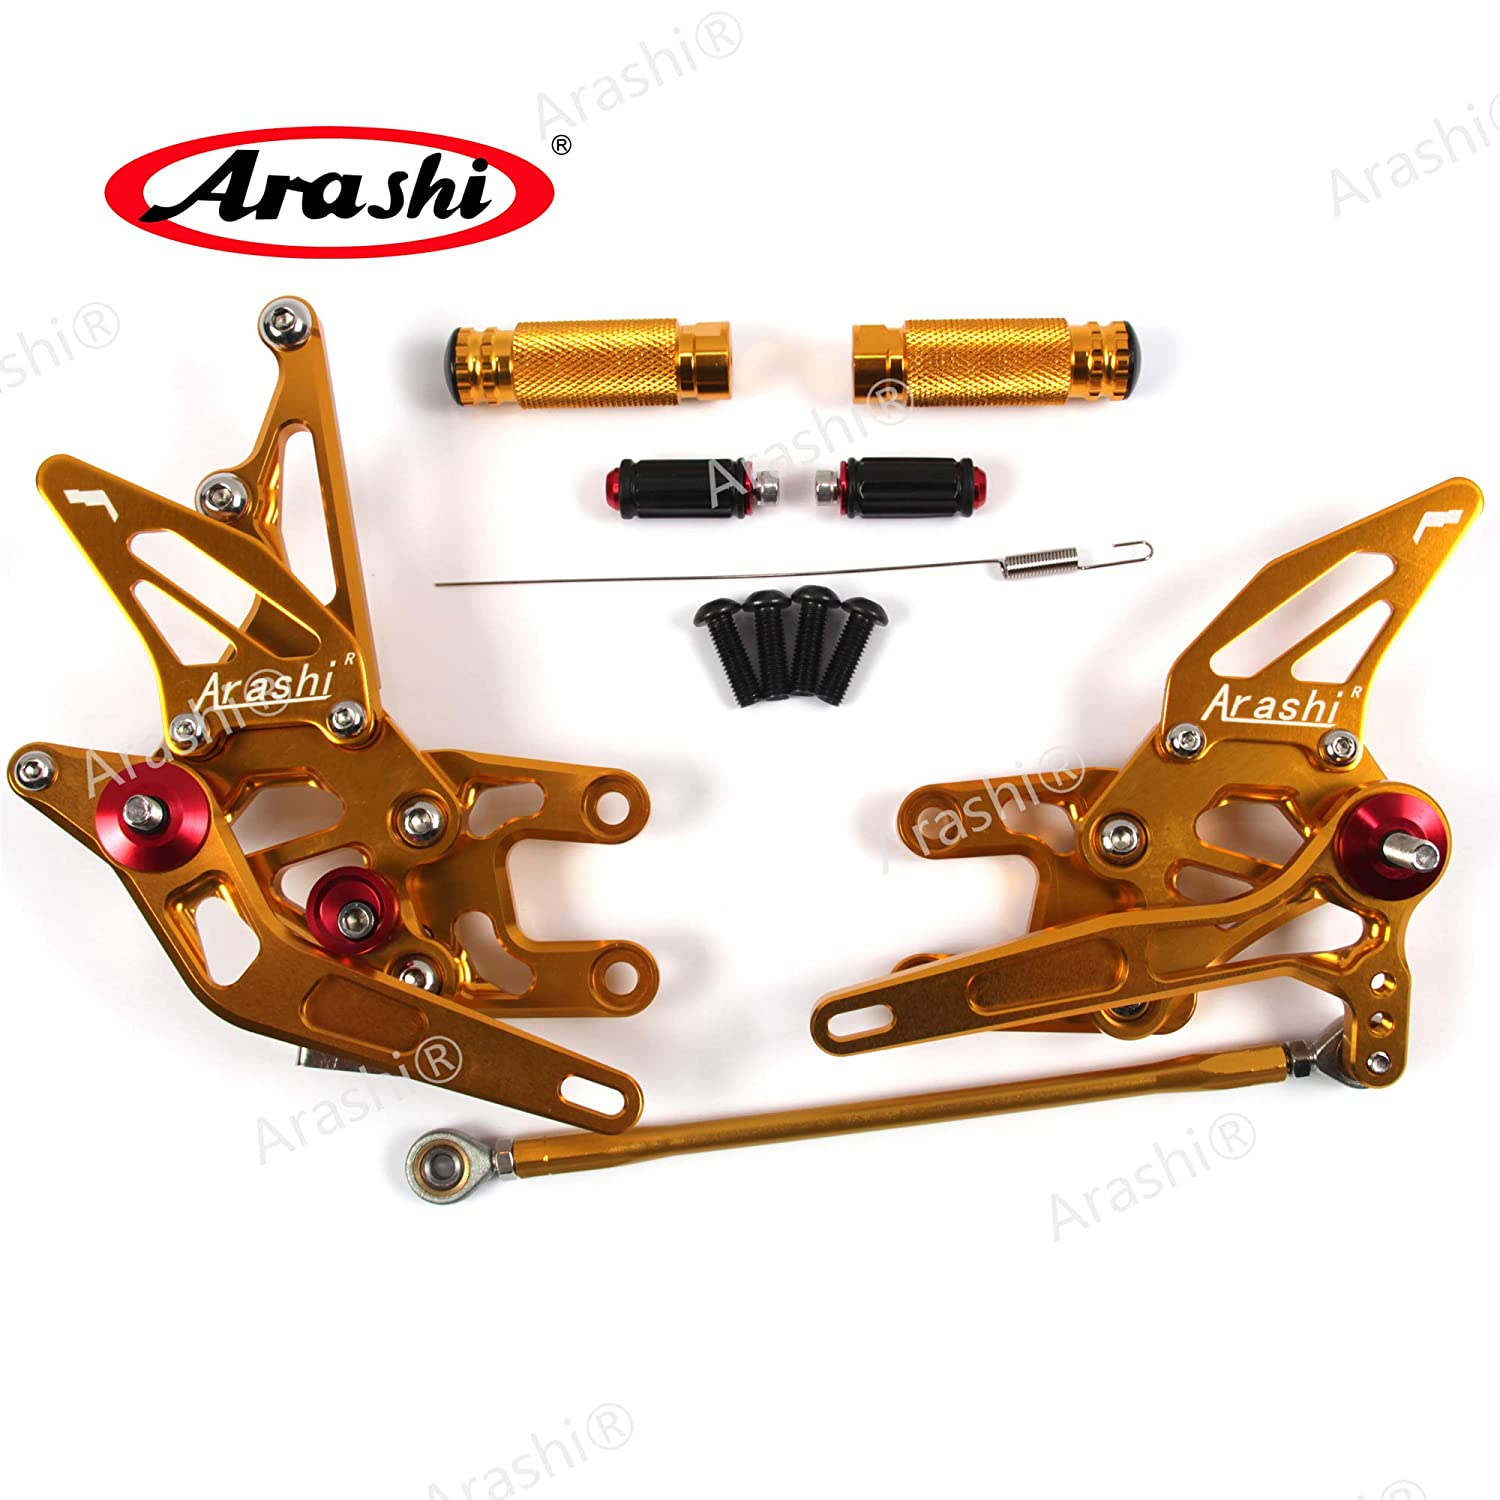 Arashi Rearsets Footrests FootPegs for KAWASAKI NINJA ZX10R ZX1000 2004 2005 Motorcycle Accessories Adjustable Foot Peg Rest ZX-10R ZX-1000 ZX 10R 1000 1 Set Gold 04 05